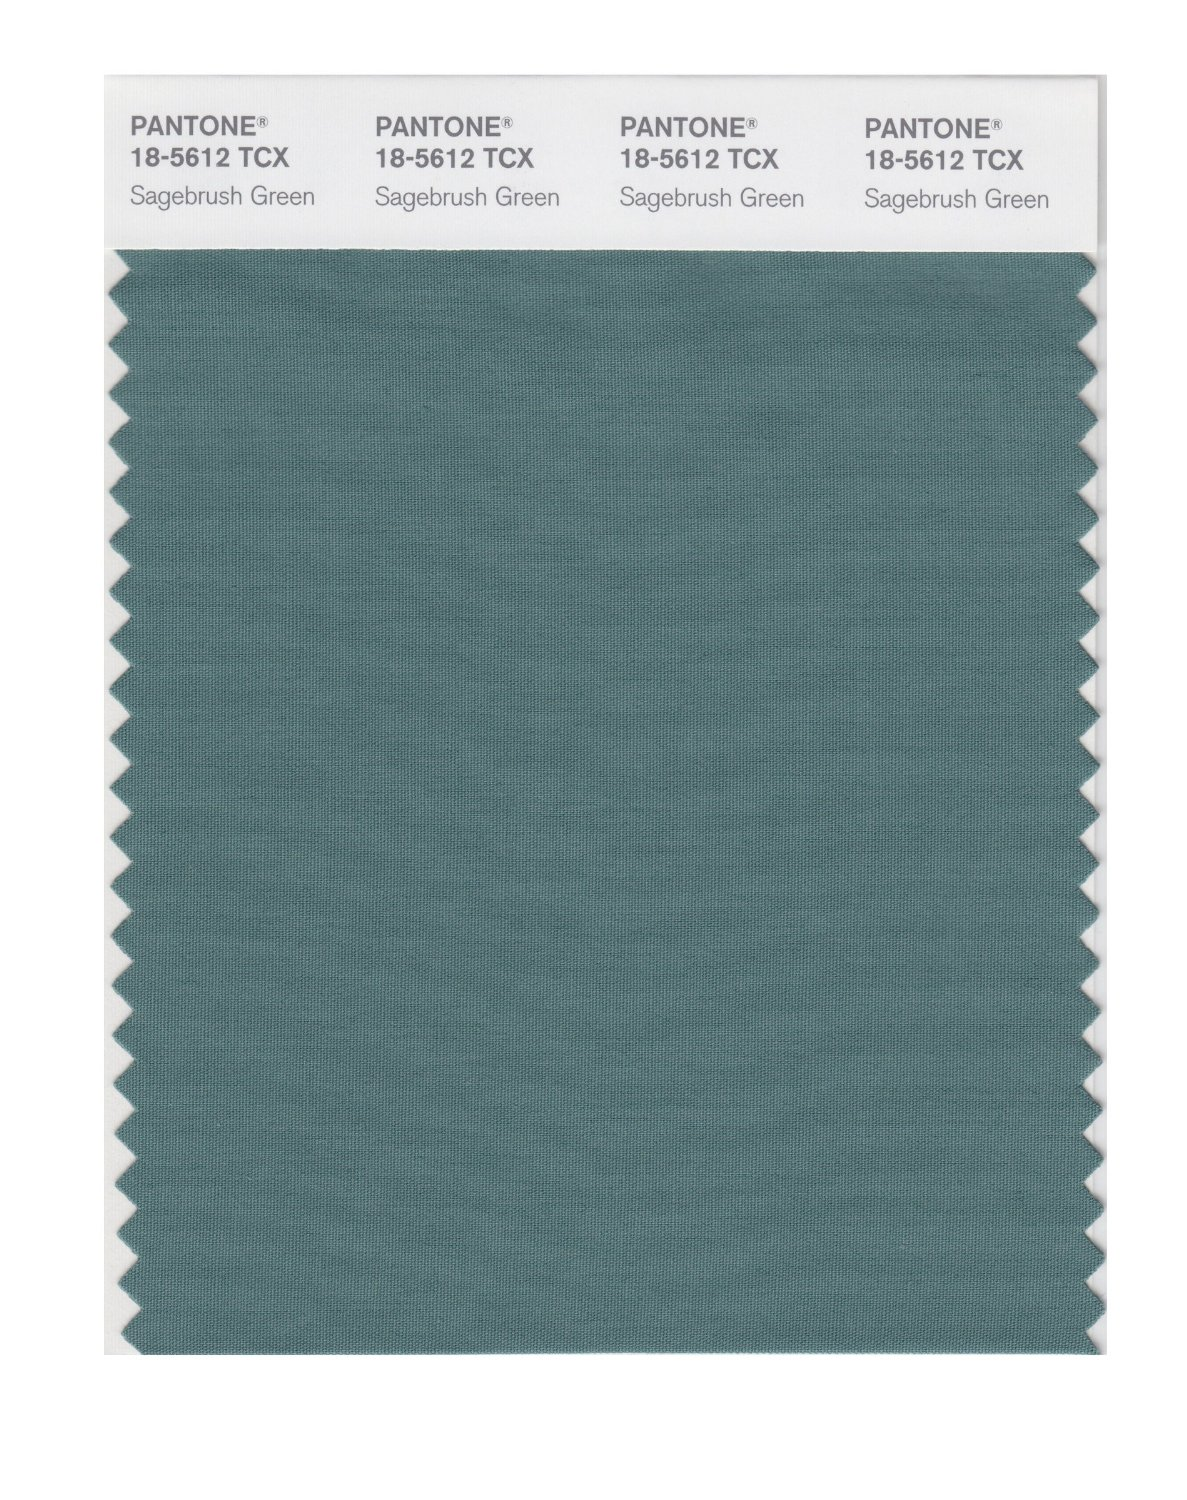 Pantone Smart Swatch 18-5612 Sagebush Green